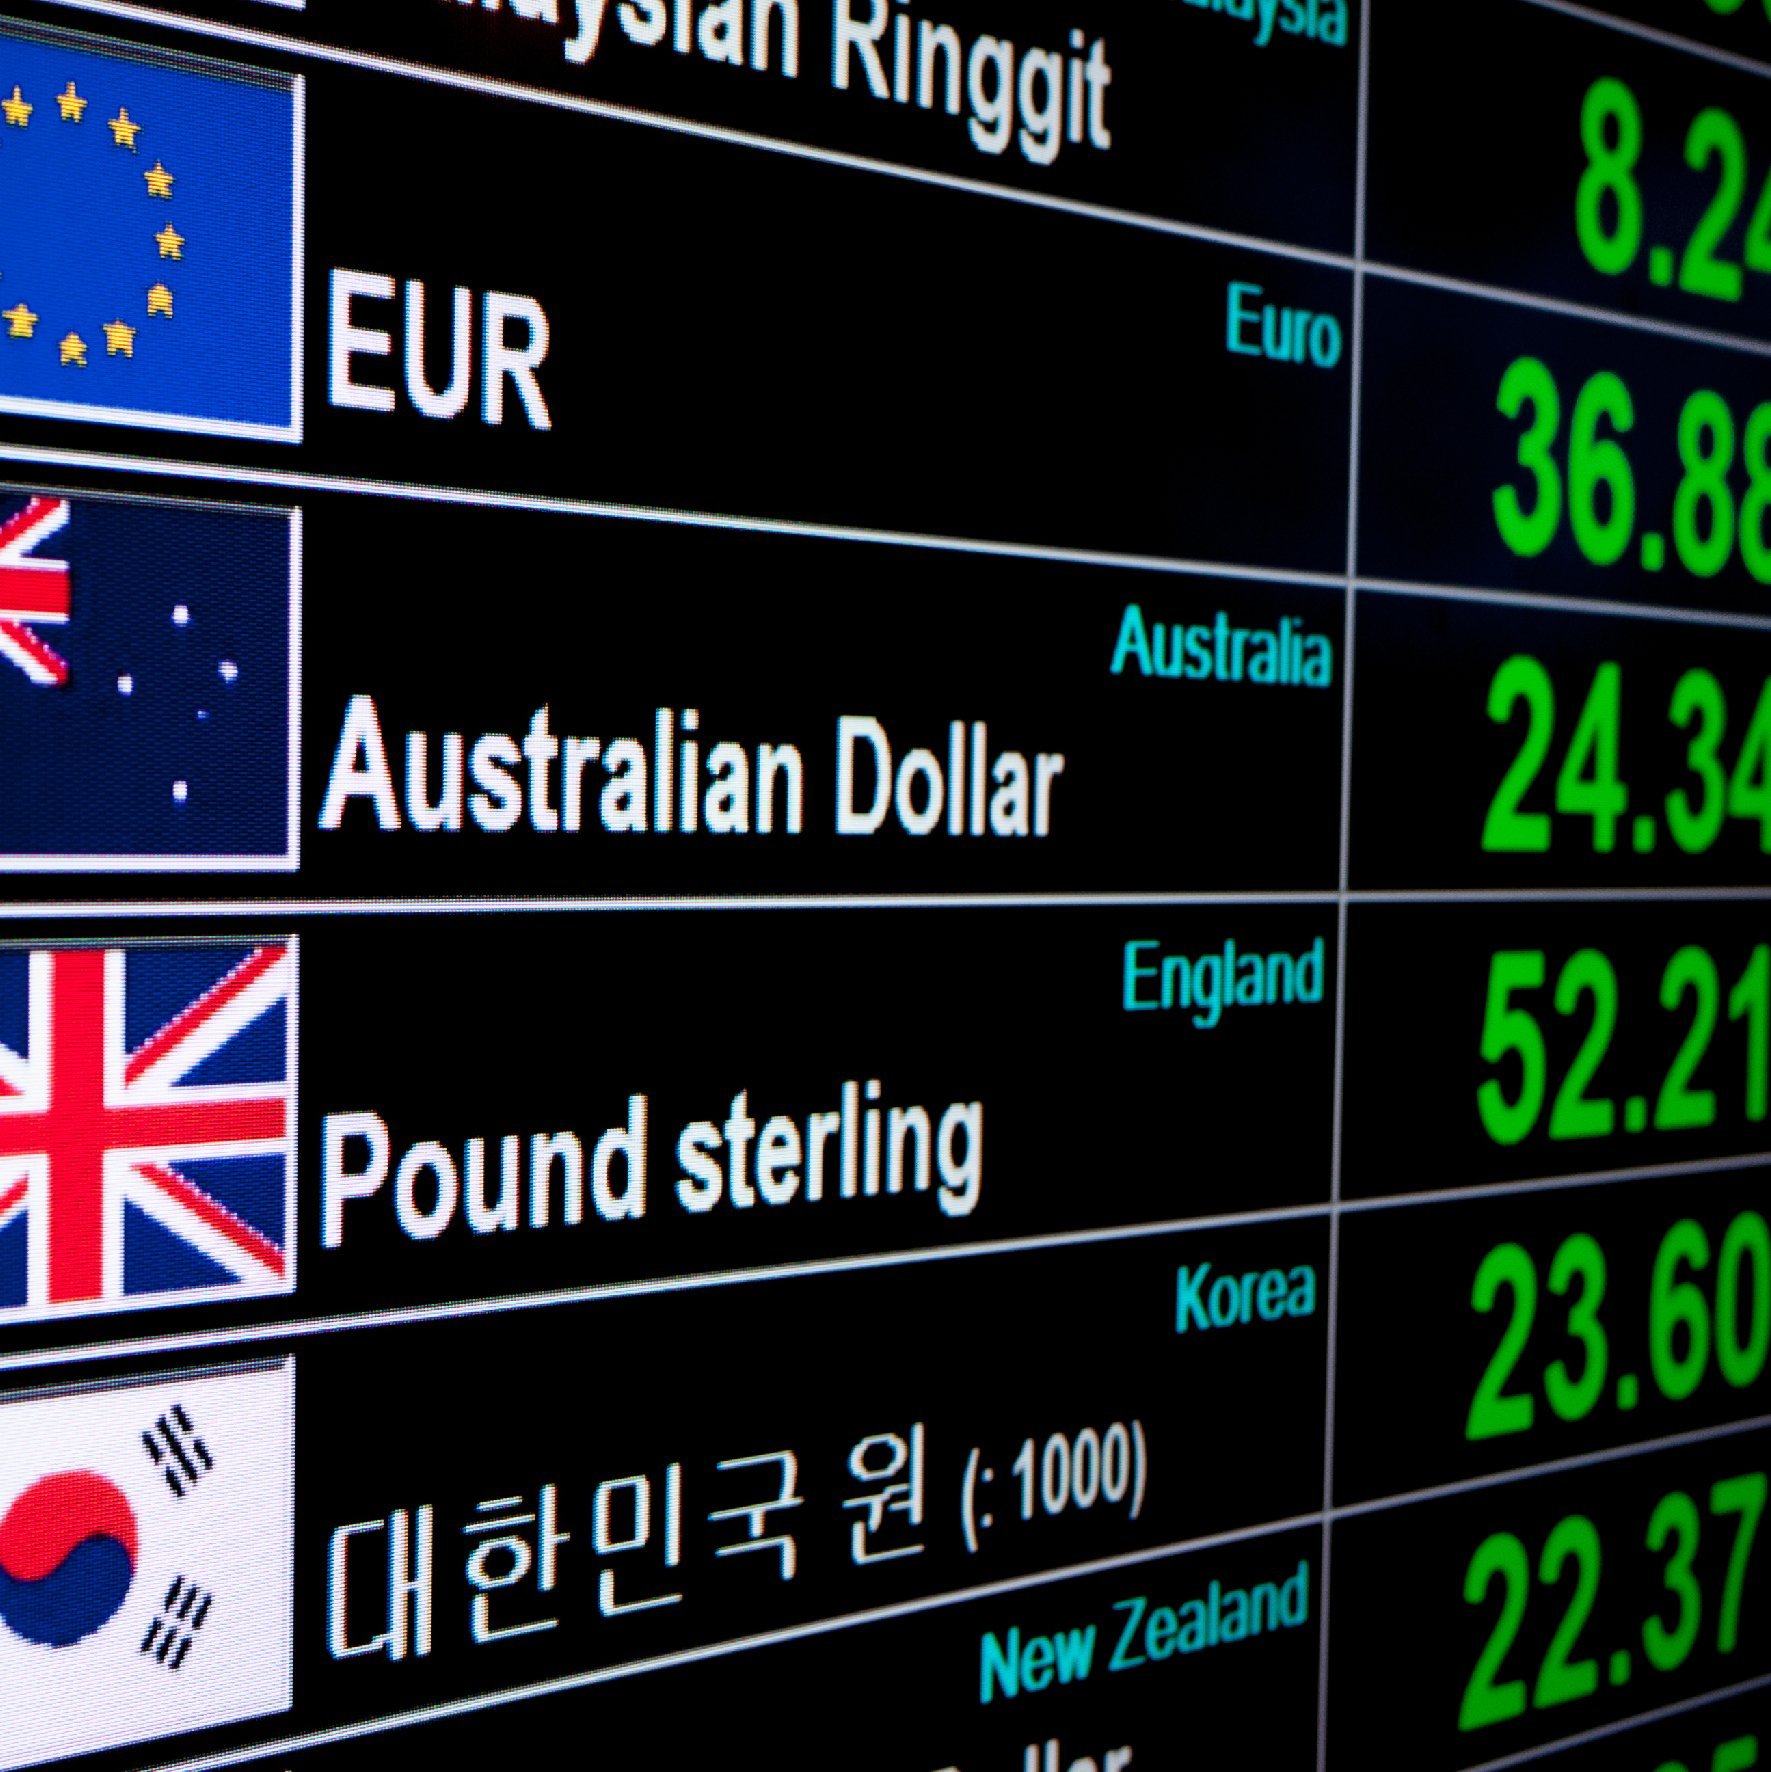 Fluctuating currencies on screen